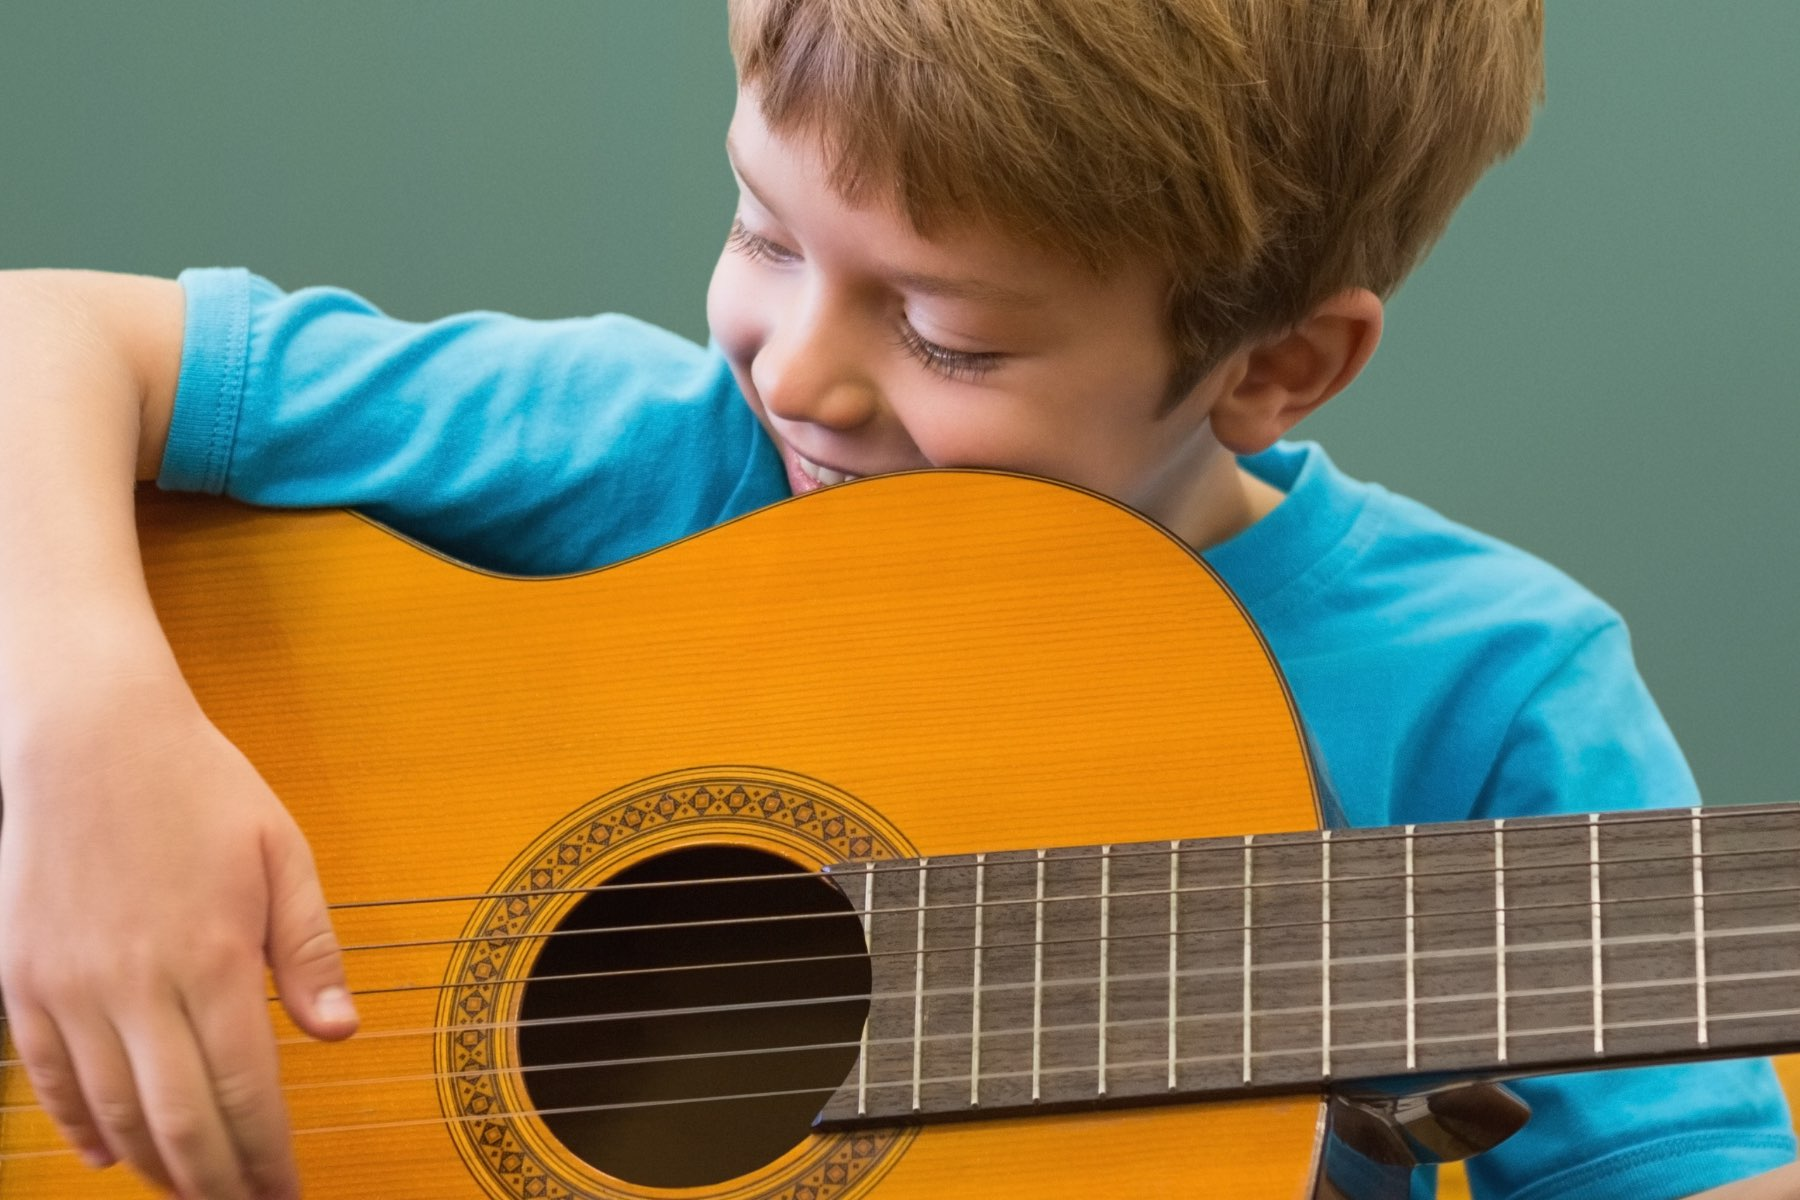 Lexington school of music offers music instruction books and accessories available for purchase.